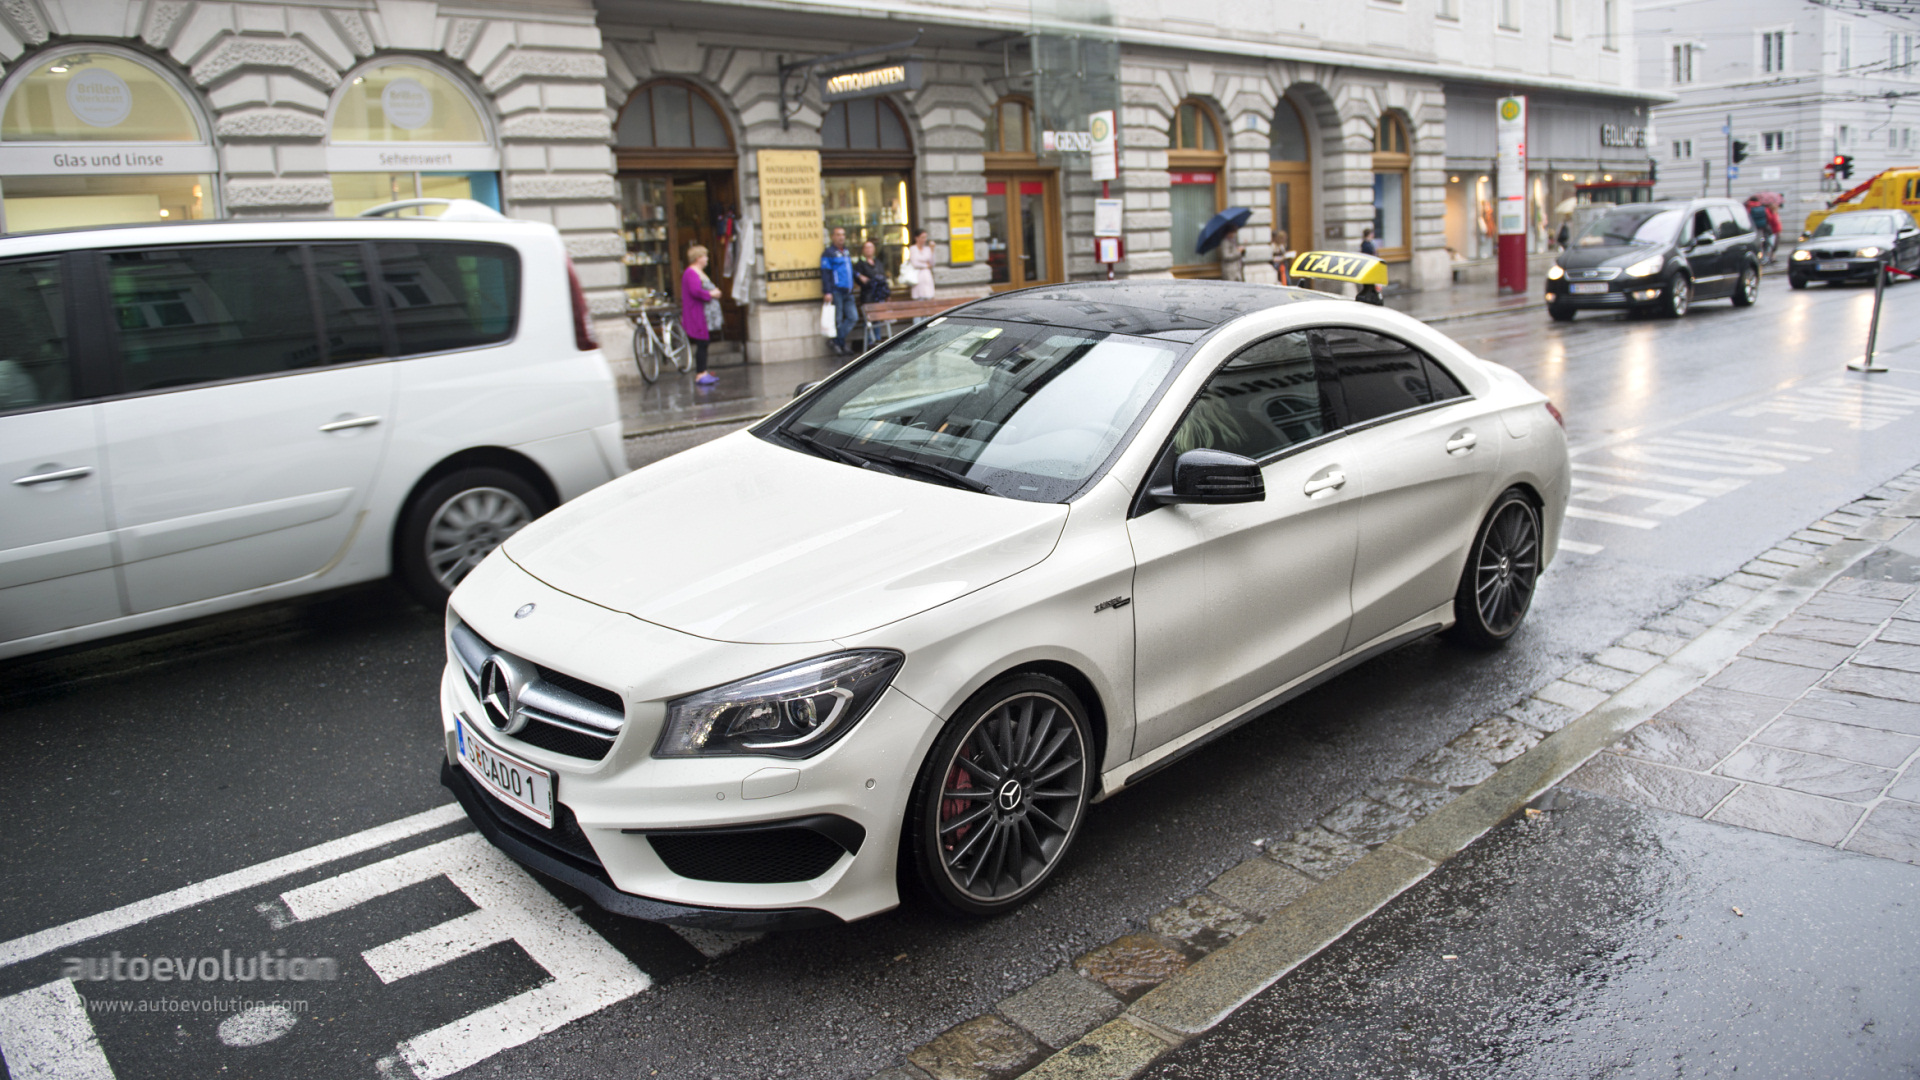 first cla 45 amg taxi is owned and driven by a woman updated. Black Bedroom Furniture Sets. Home Design Ideas